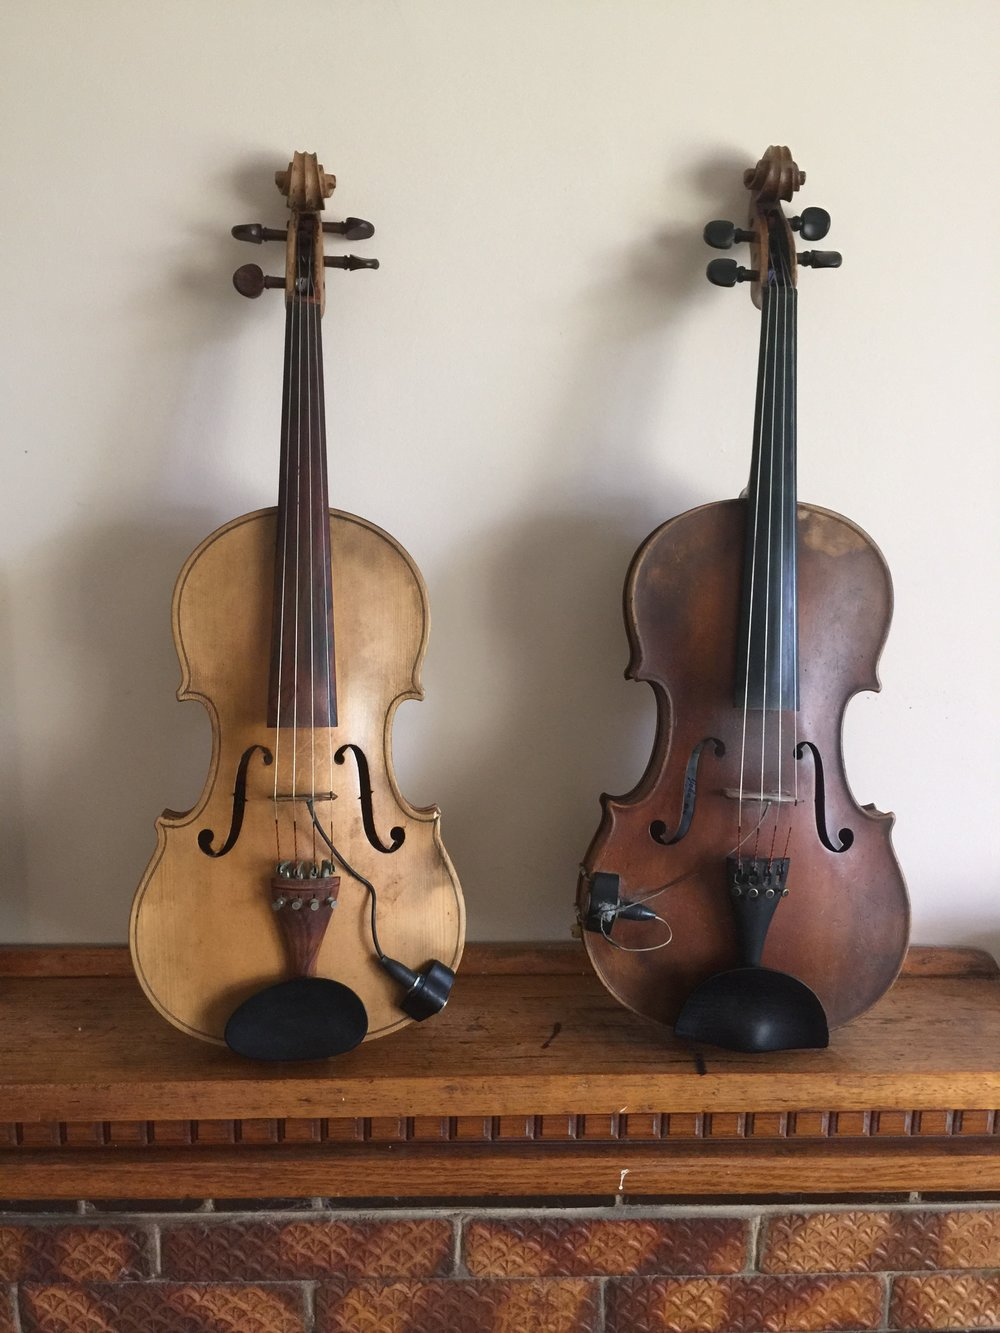 10. Lady Marmalade & Tiger I know it's daggy (refer to photo 3) but I named my violas Lady Marmalade and Tiger.  Lady Marmalade was my first viola, she cost about $100 but she means a lot more than that to me.